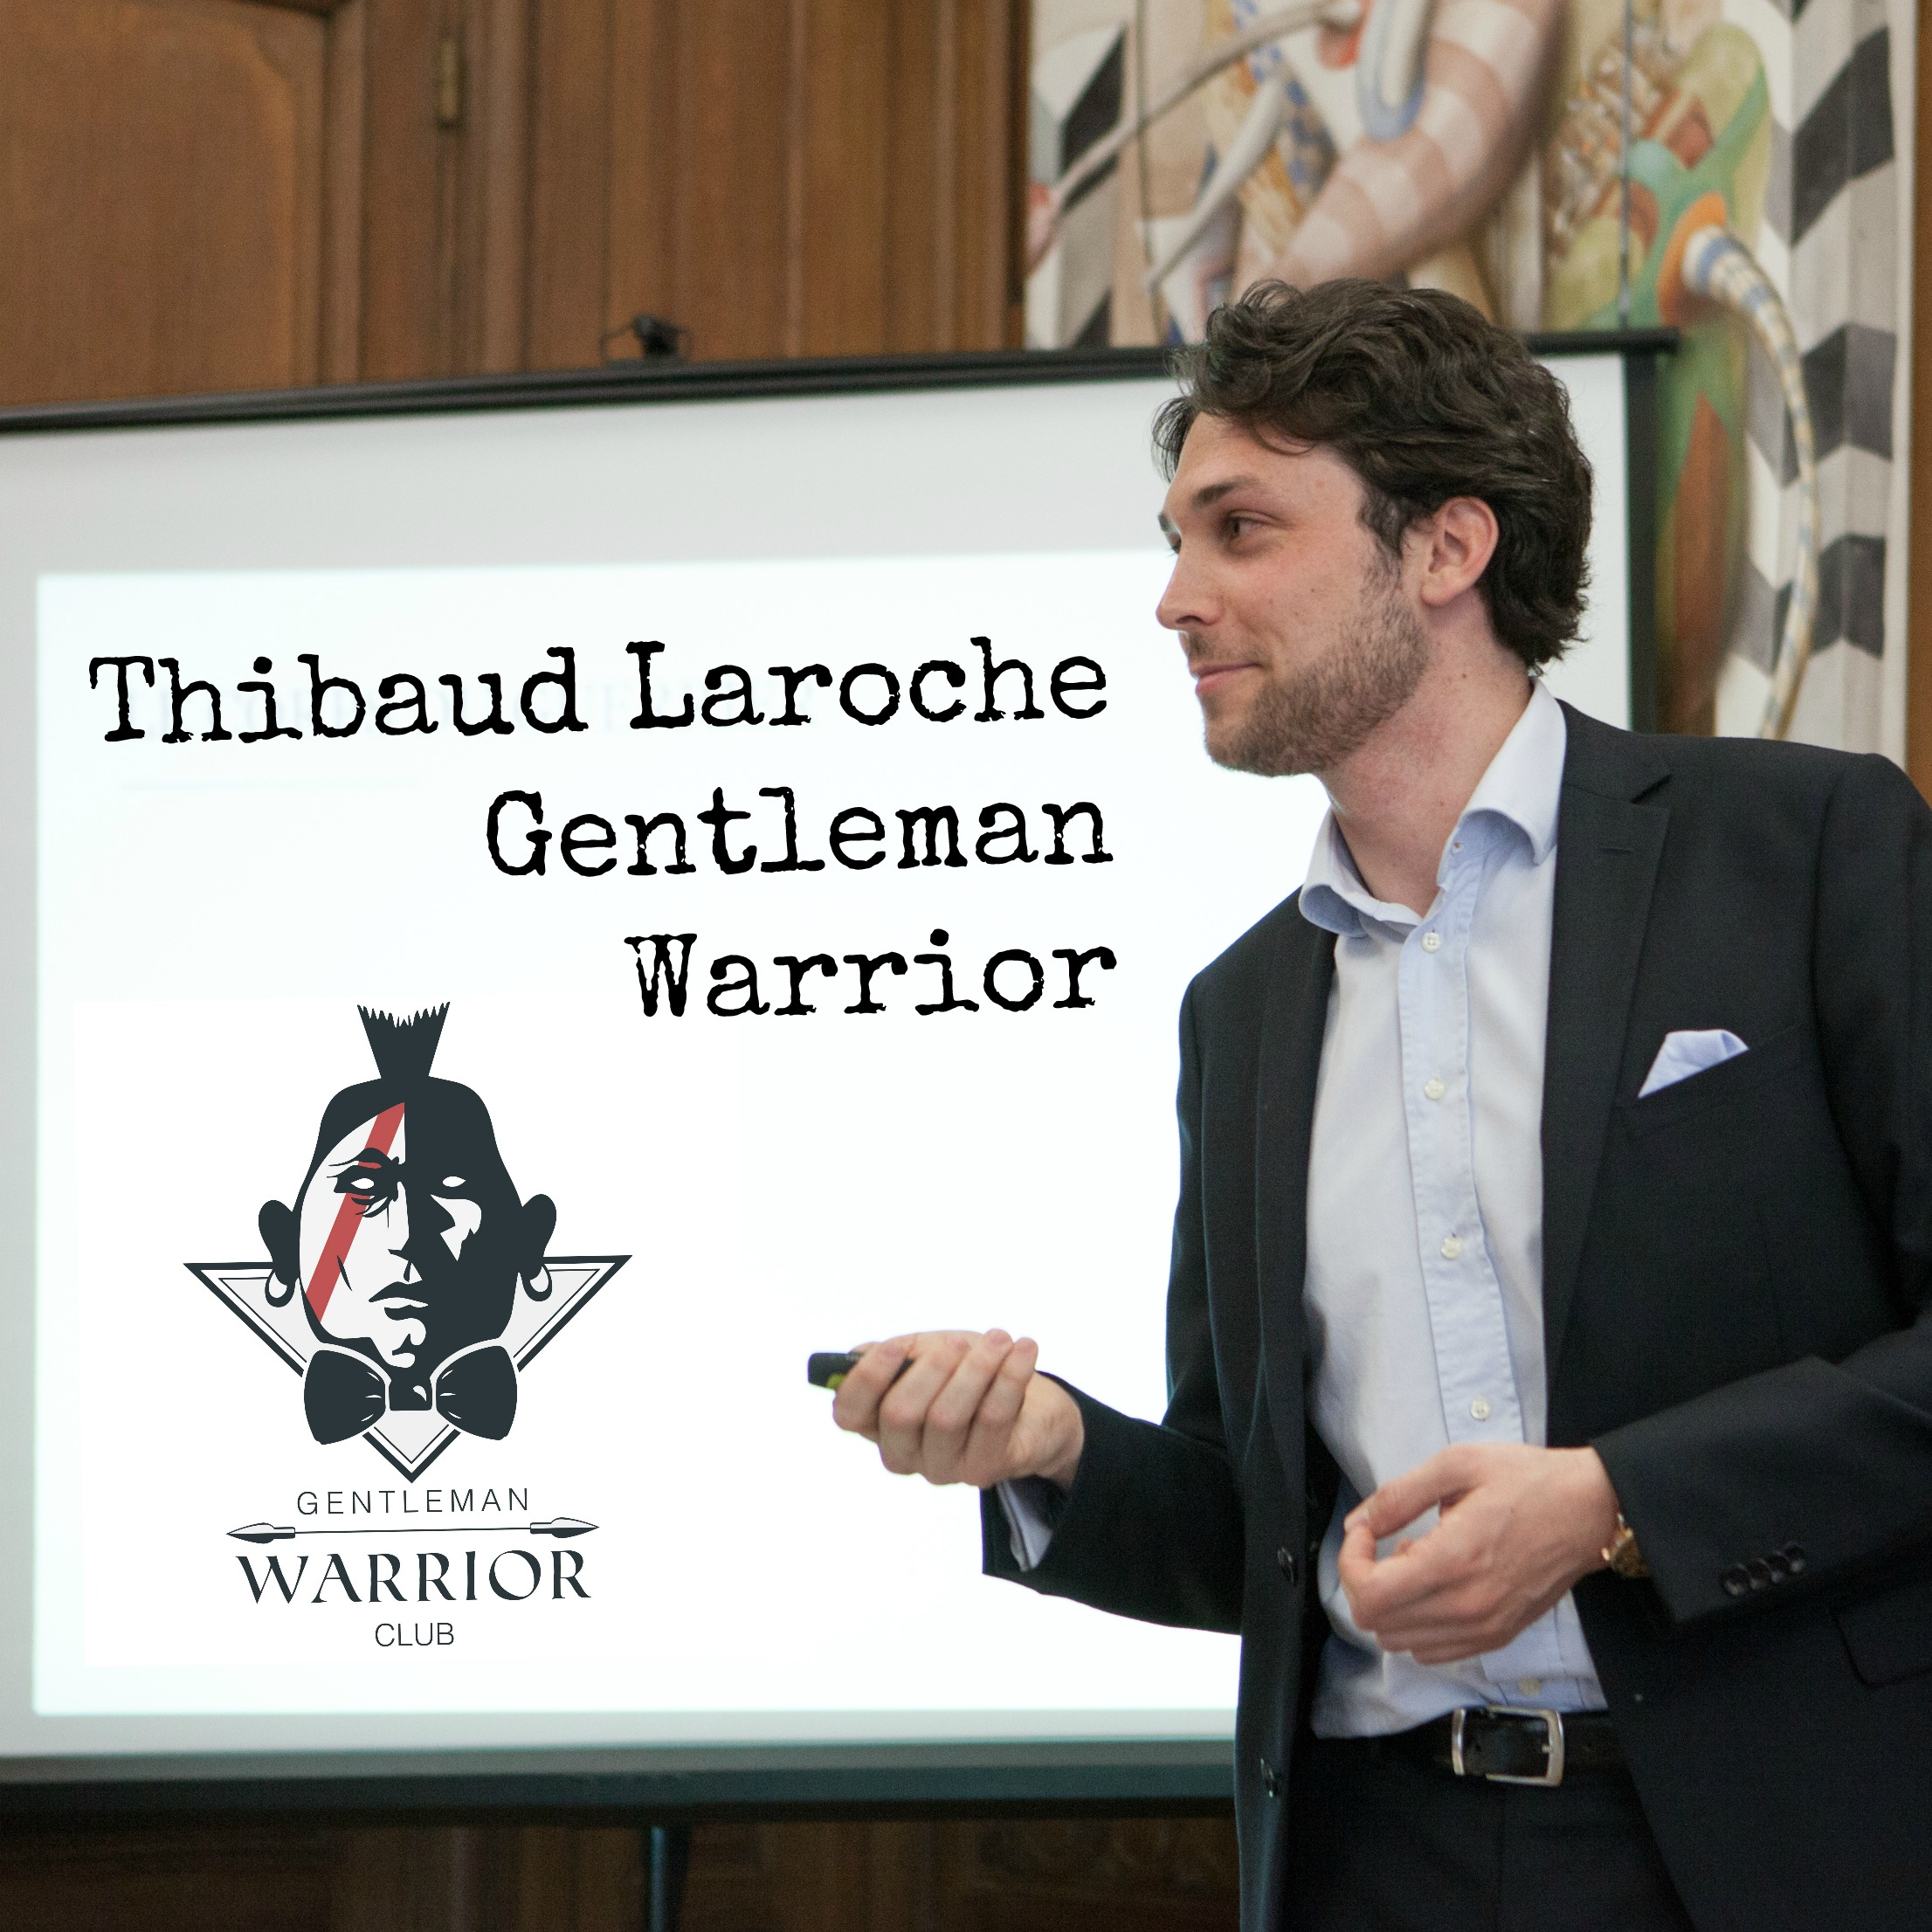 Thibaud Laroche Gentleman Warrior